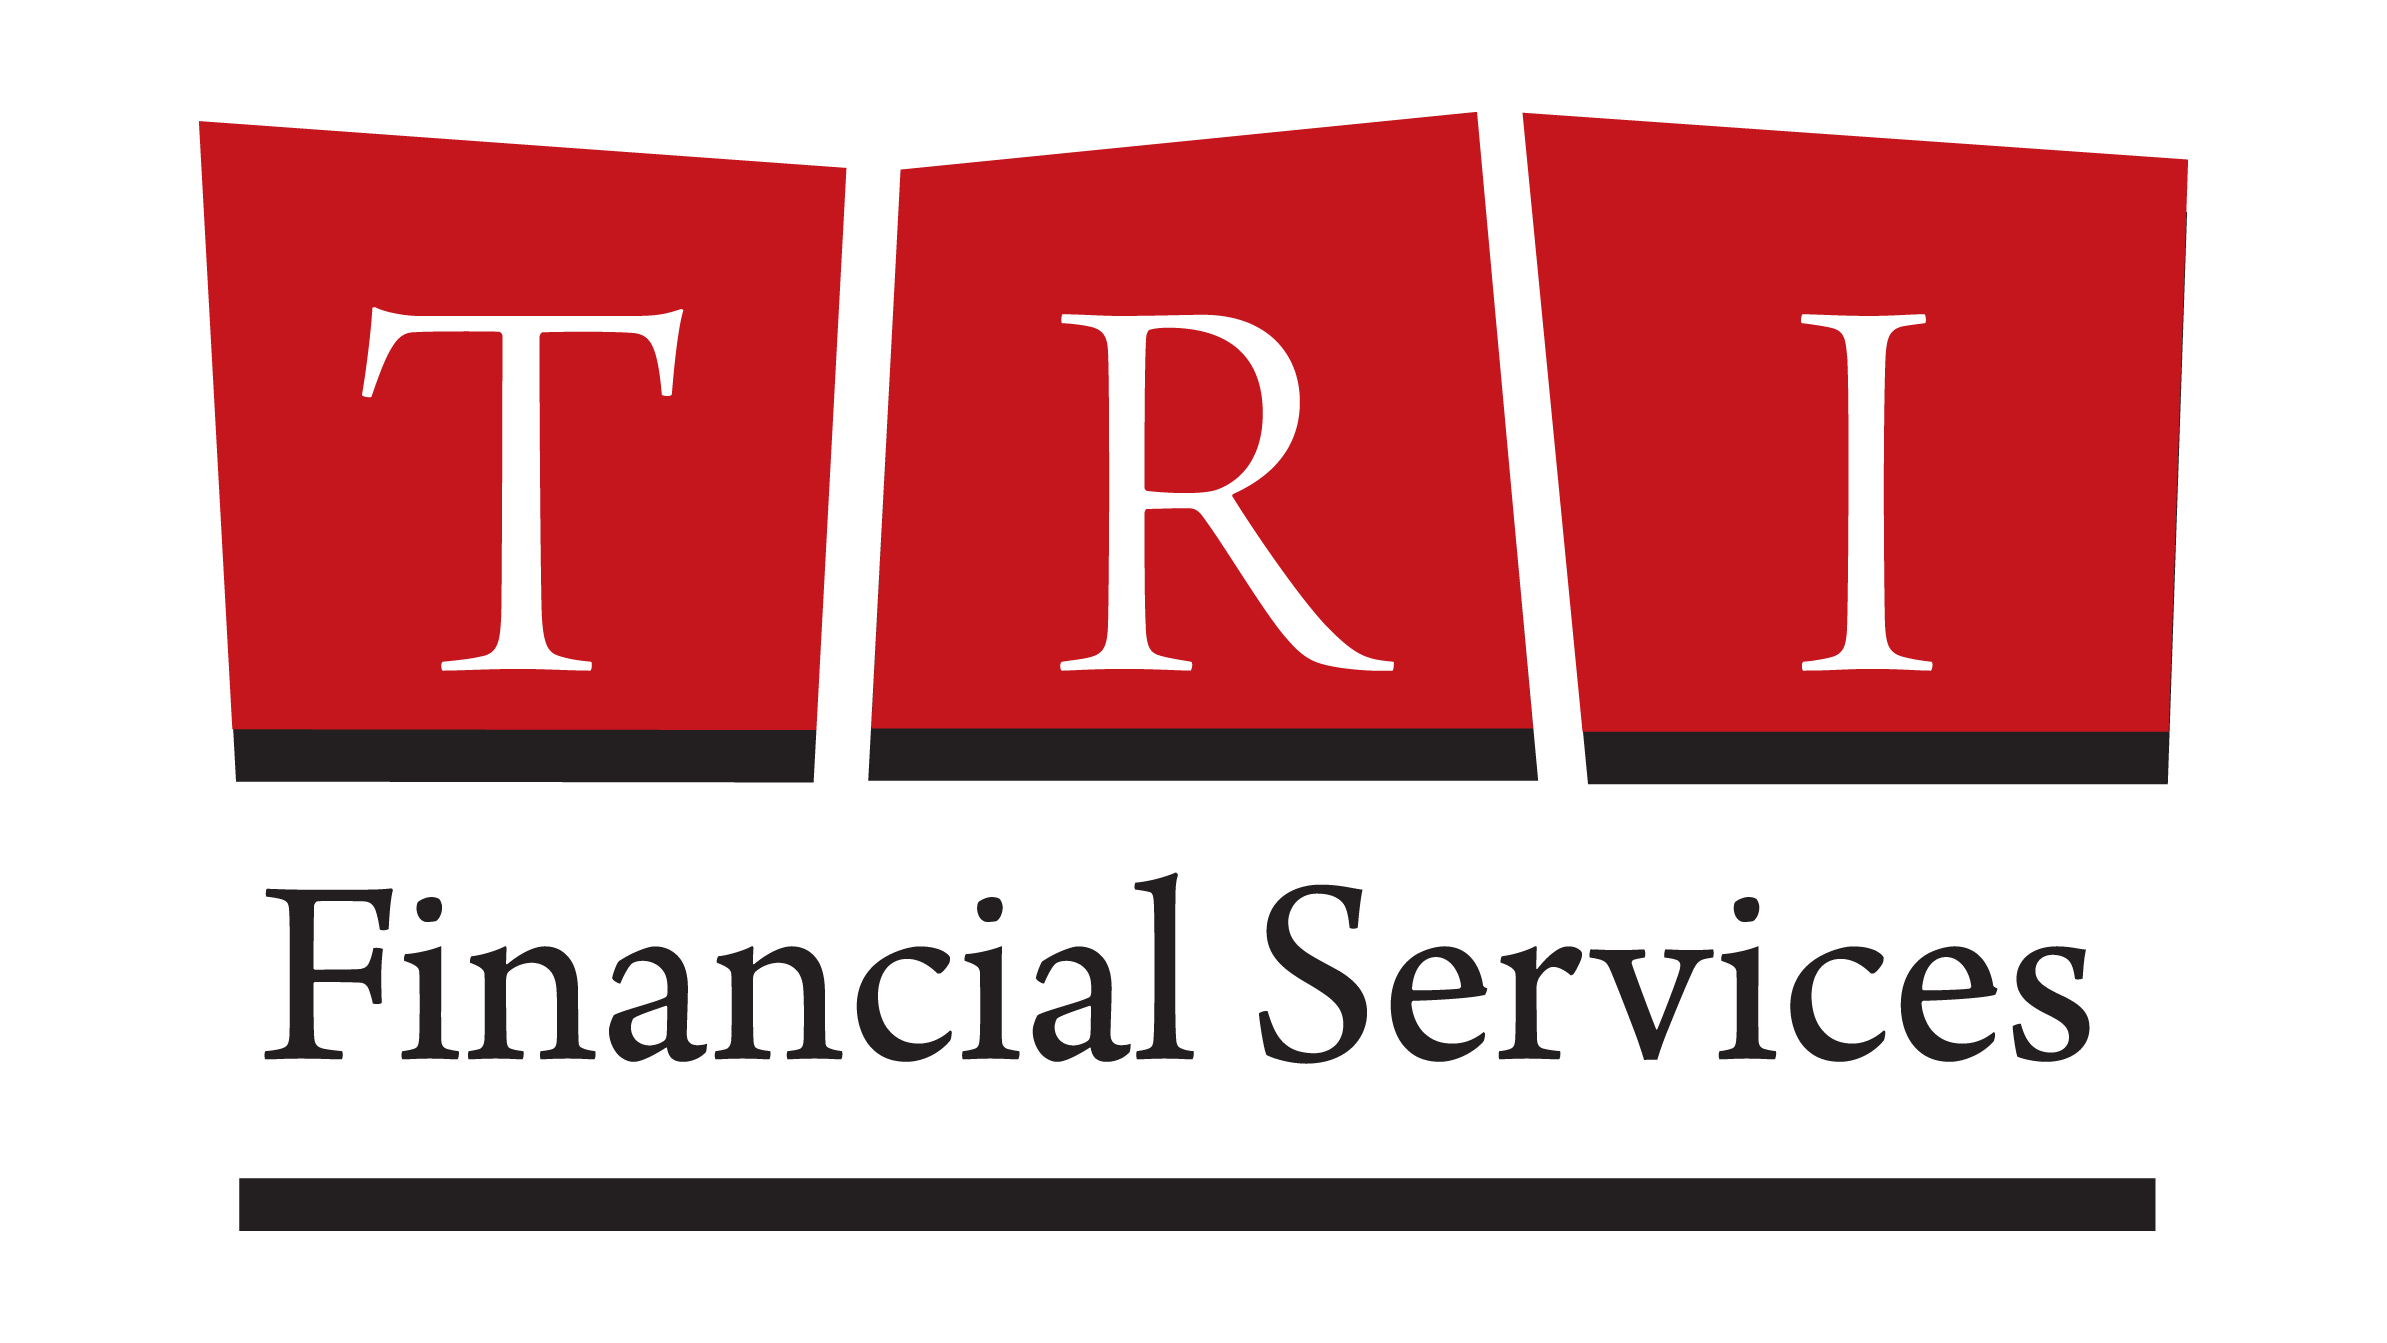 tri financial services logo